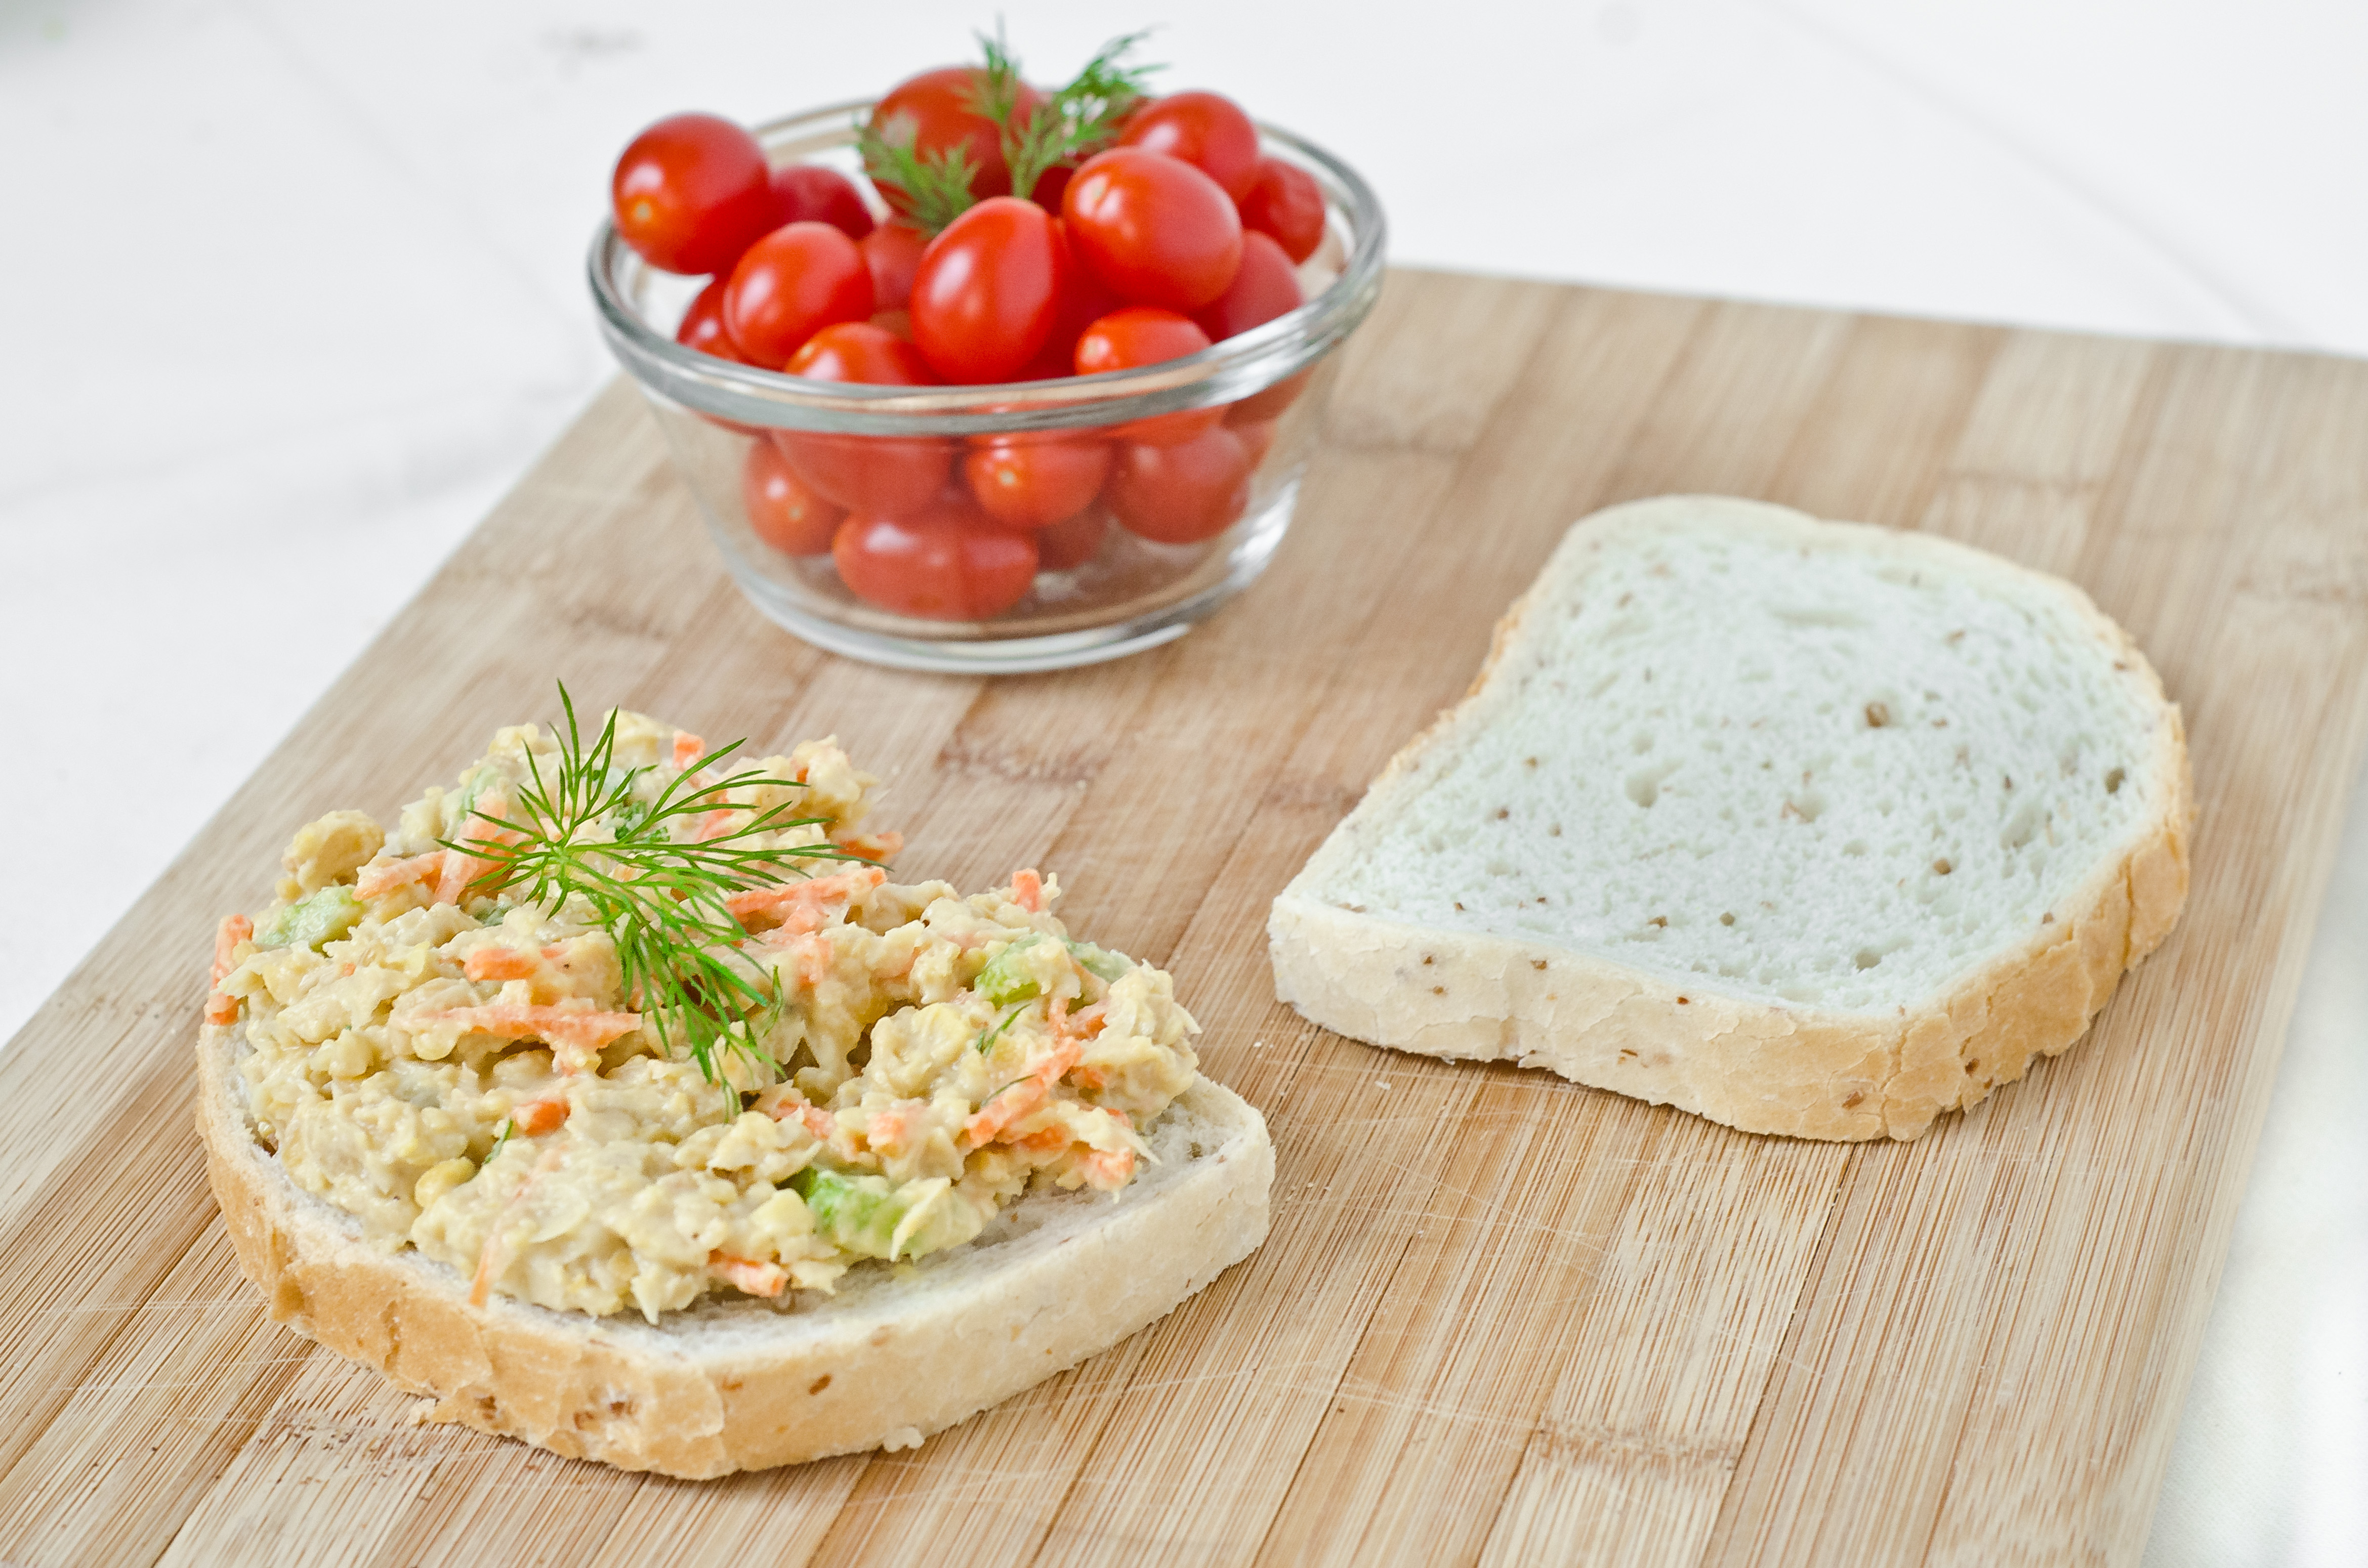 Lunch Recipes  Food Network  Food Network